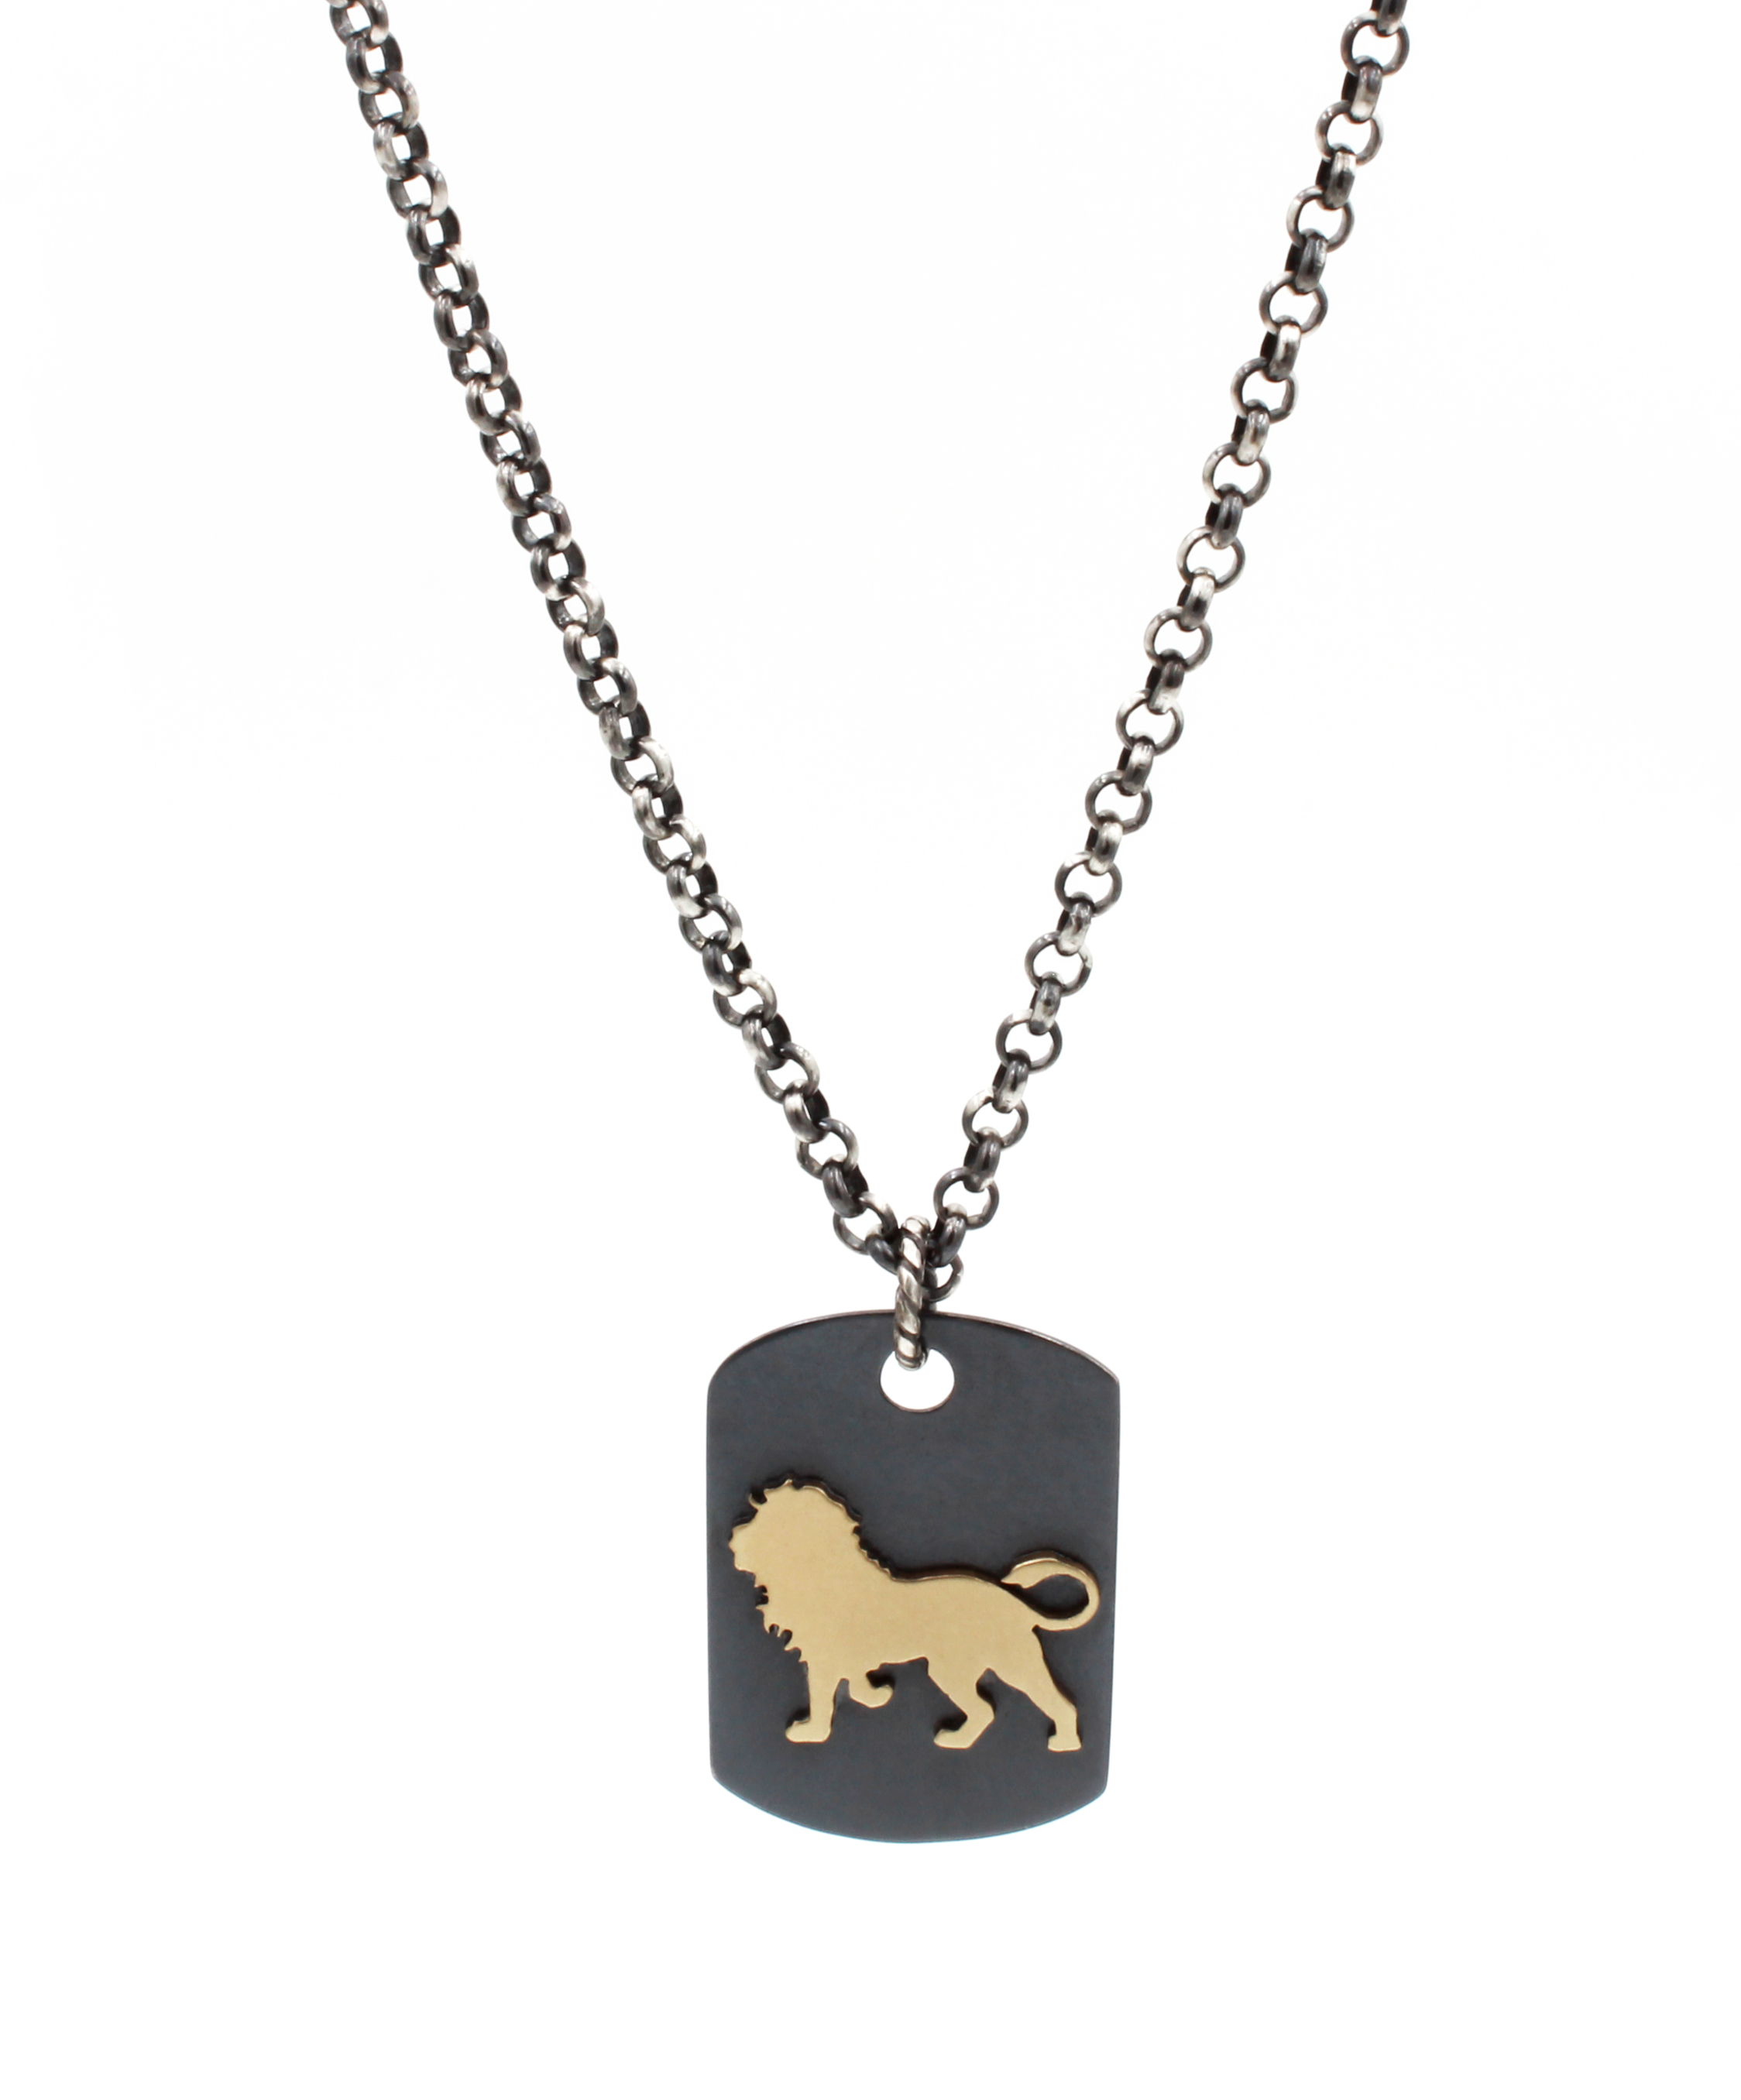 Lion Dog Tag Necklace.jpg